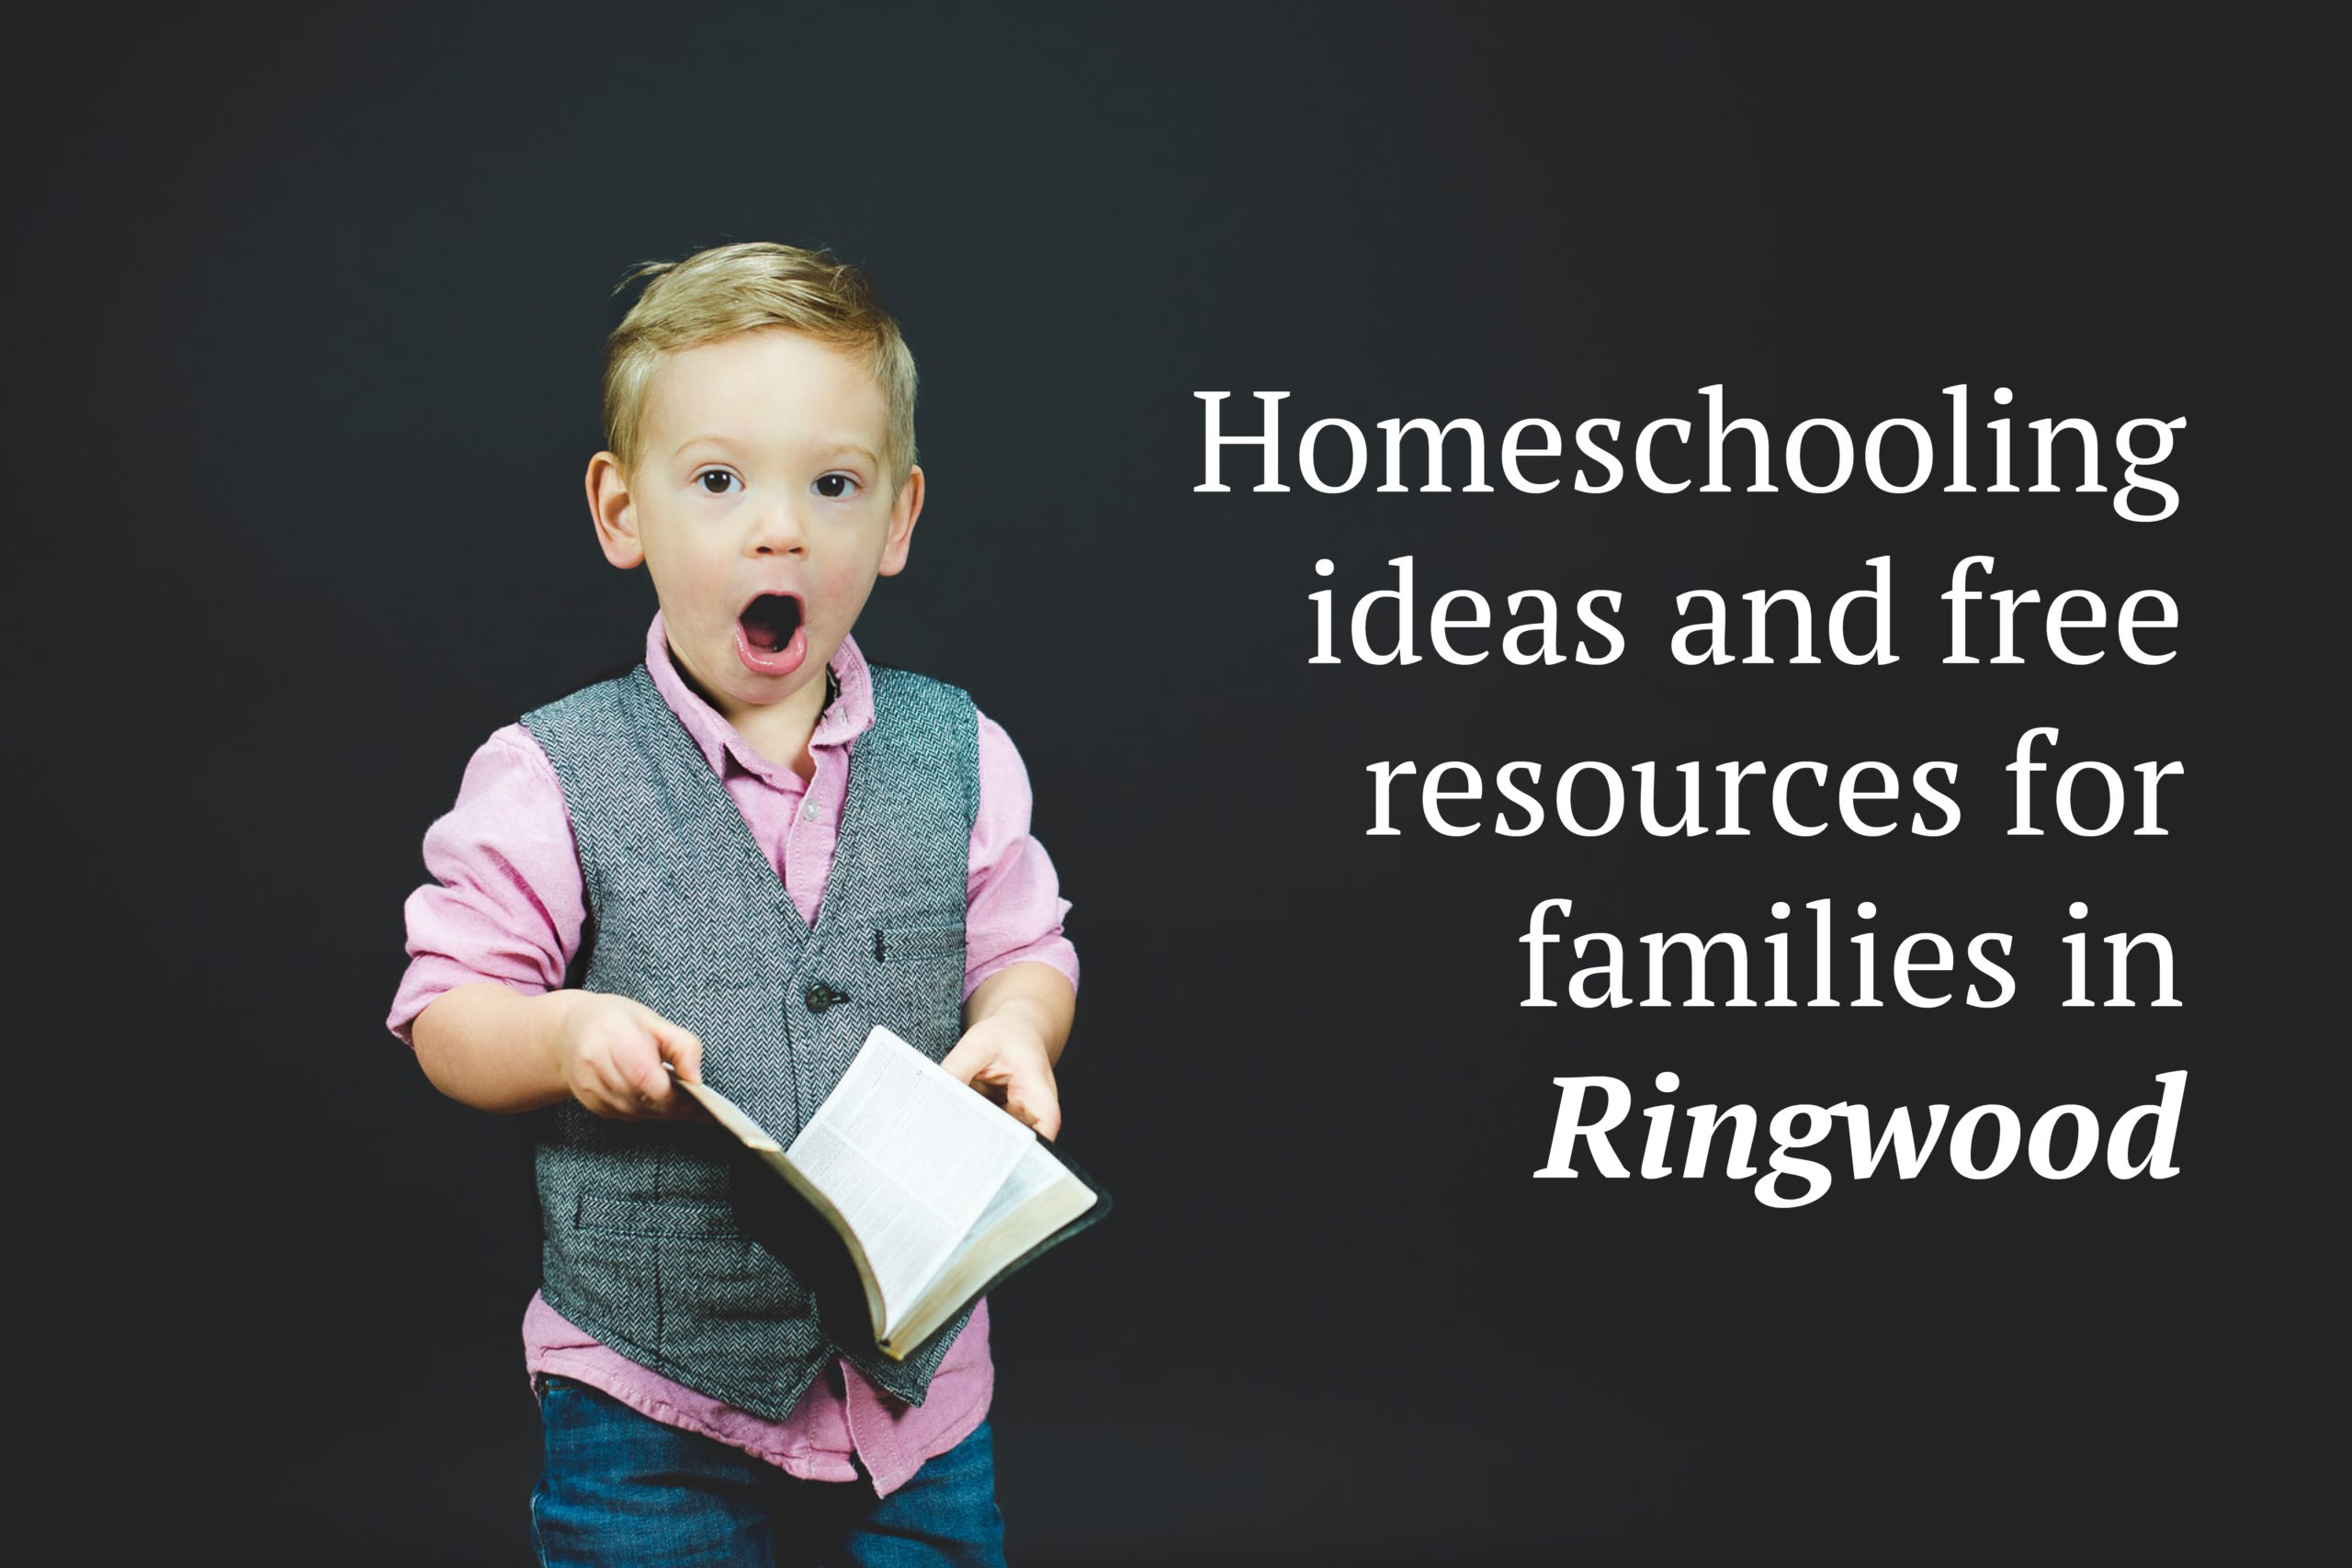 Homeschooling ideas and free resources for families in Ringwood